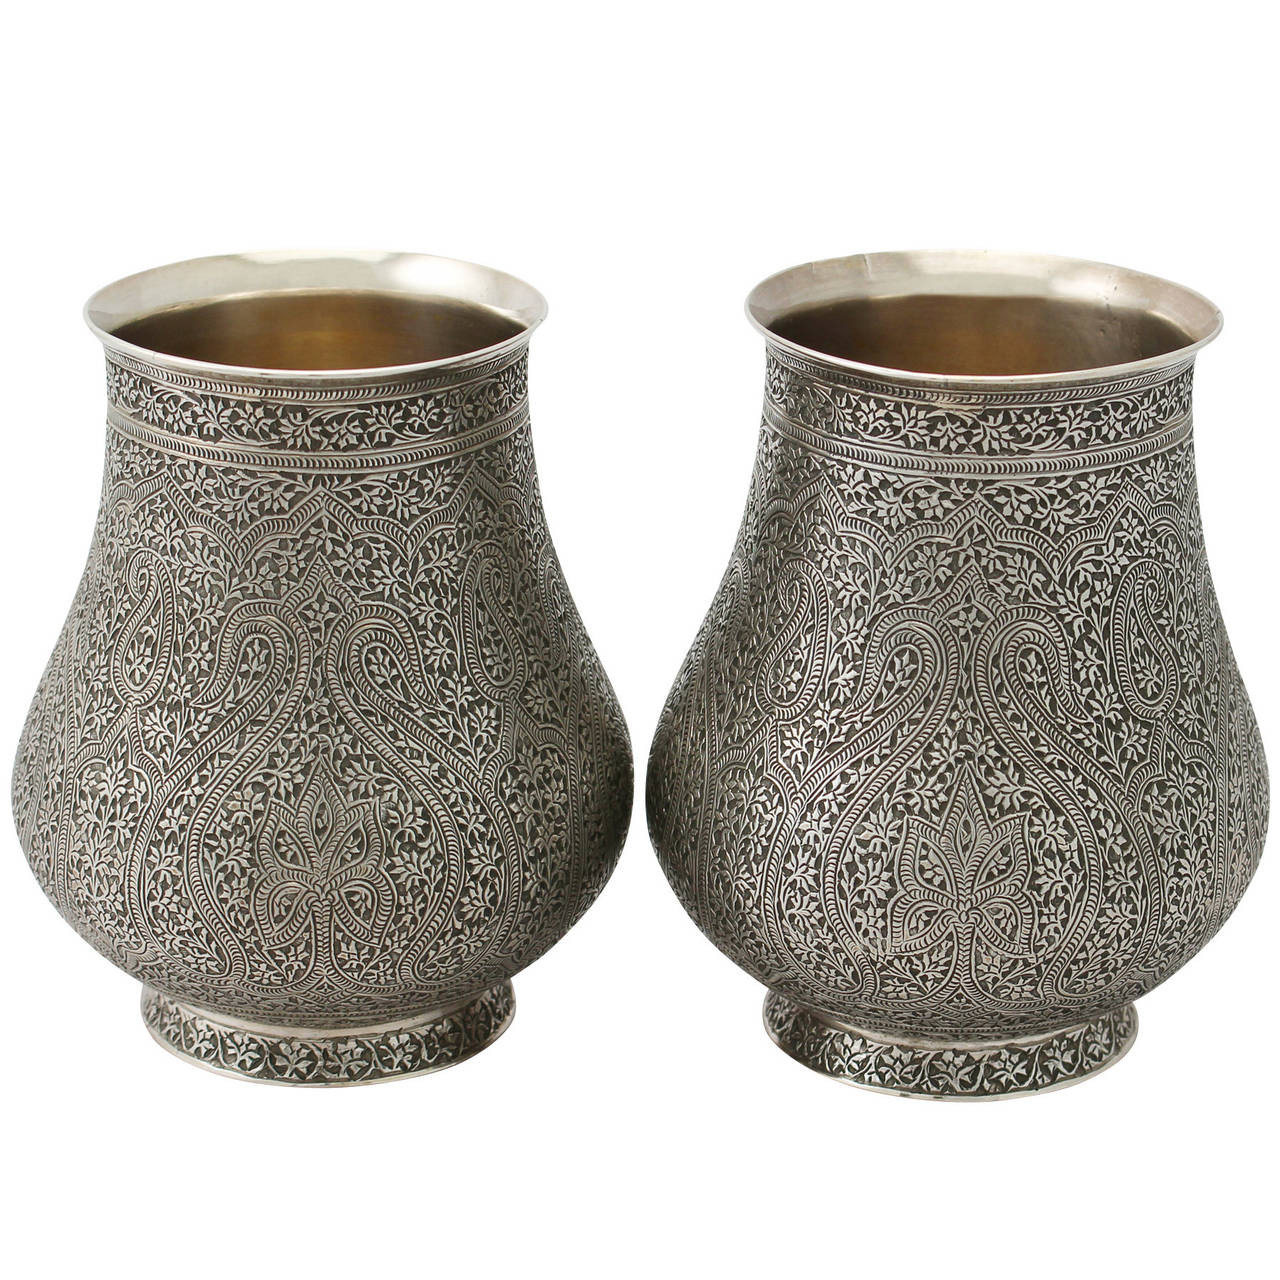 antique sterling silver bud vase of sterling silver vase antique best 2000 antique decor ideas throughout pair of indian sterling silver vases antique circa 1880 at 1stdibs